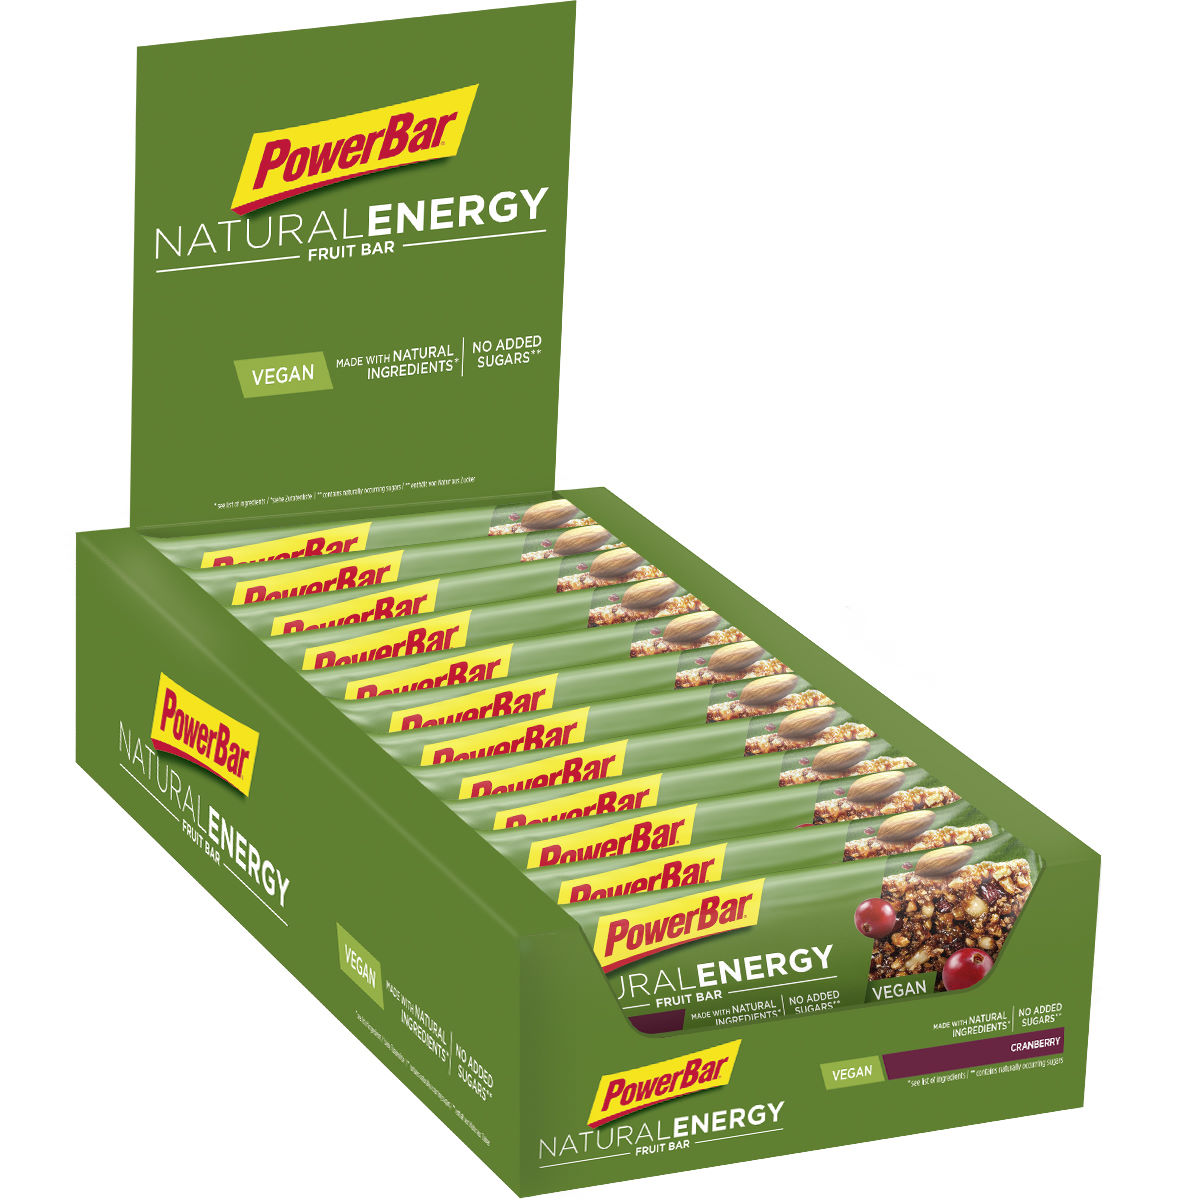 Barritas de frutas PowerBar Natural Energy (24 x 40 g) - Barritas